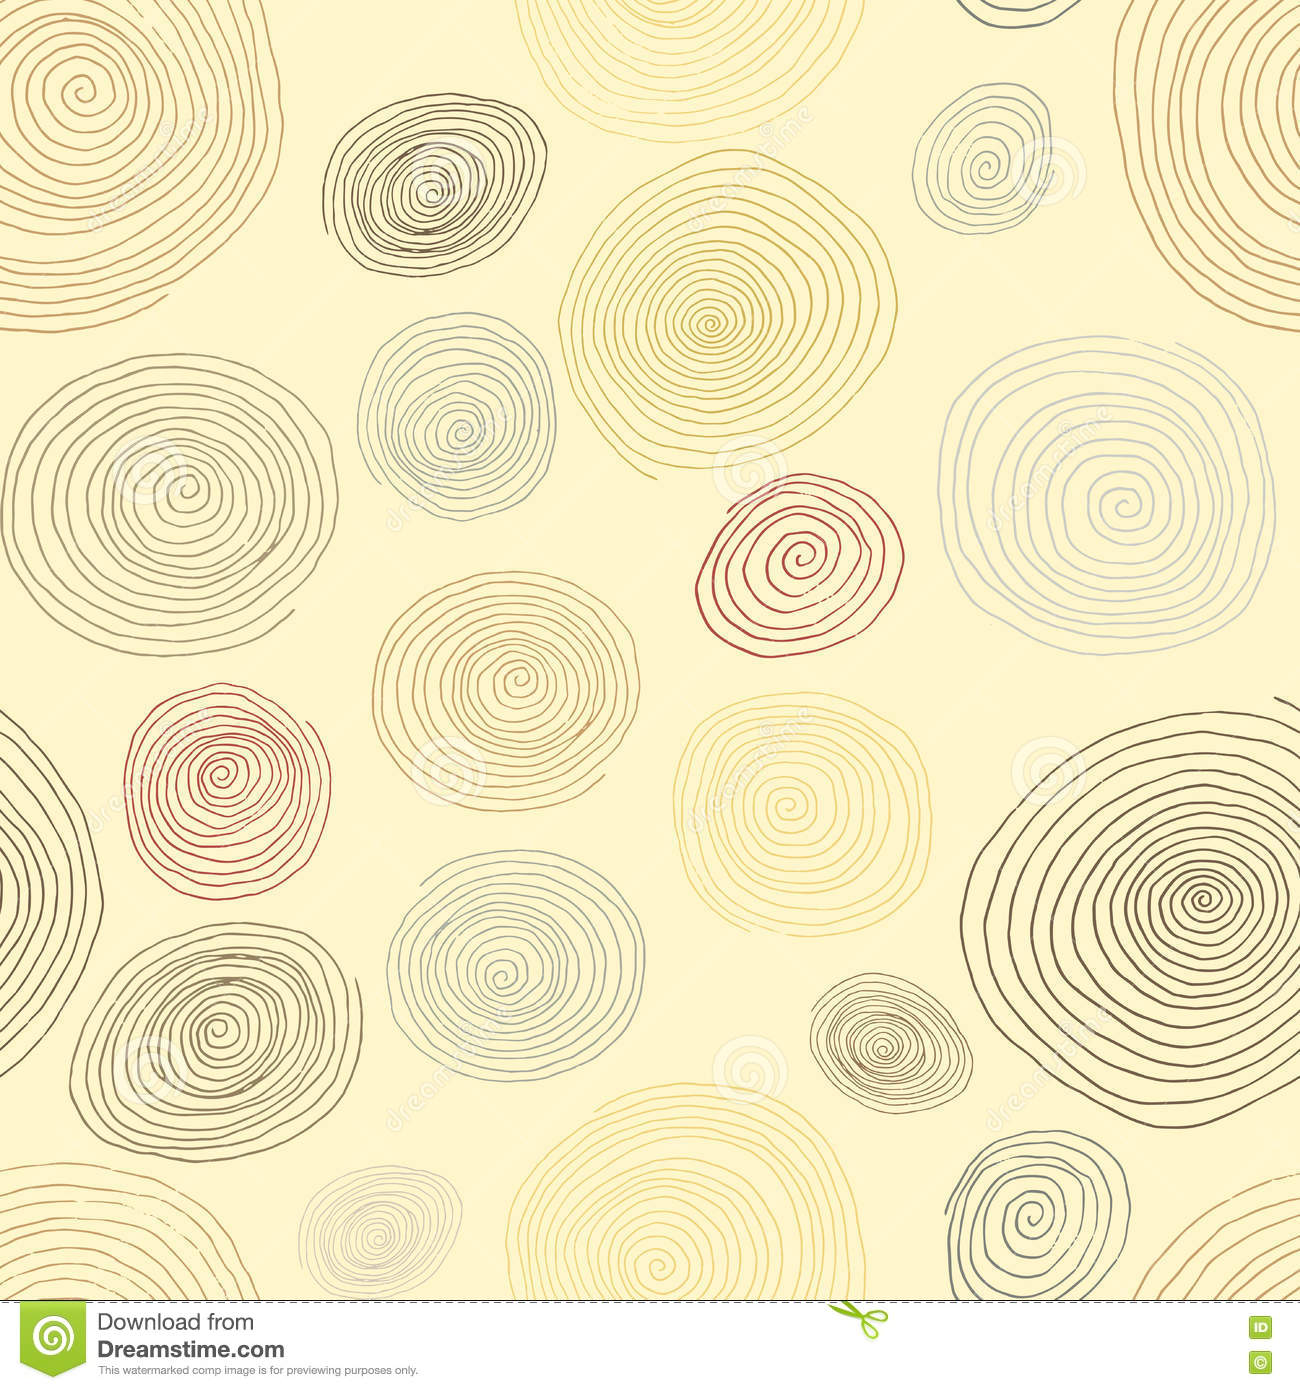 Stylized wooden spirals hand drawn seamless pattern for interior design wallpapers and ceramic tiles